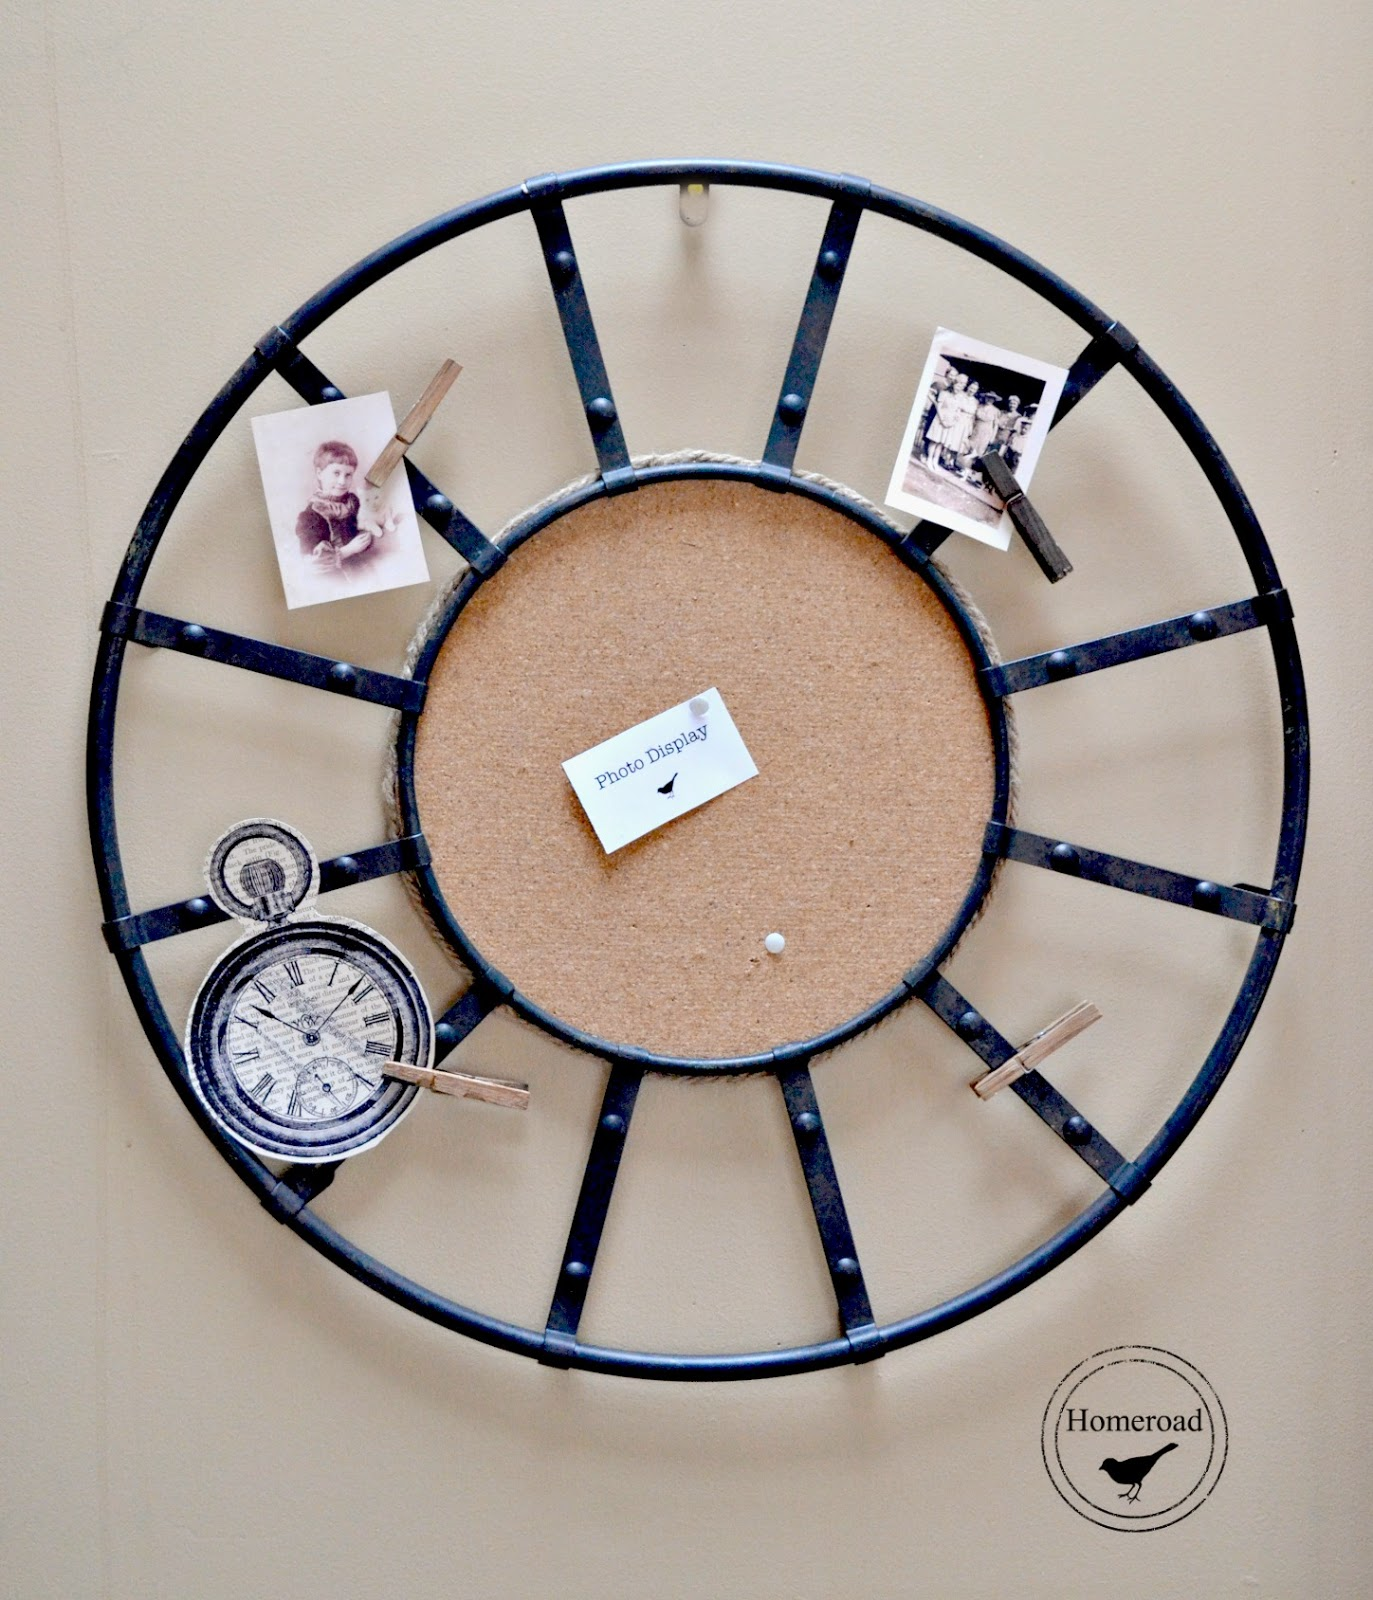 repurposed Kensington clock www.homeroad.net